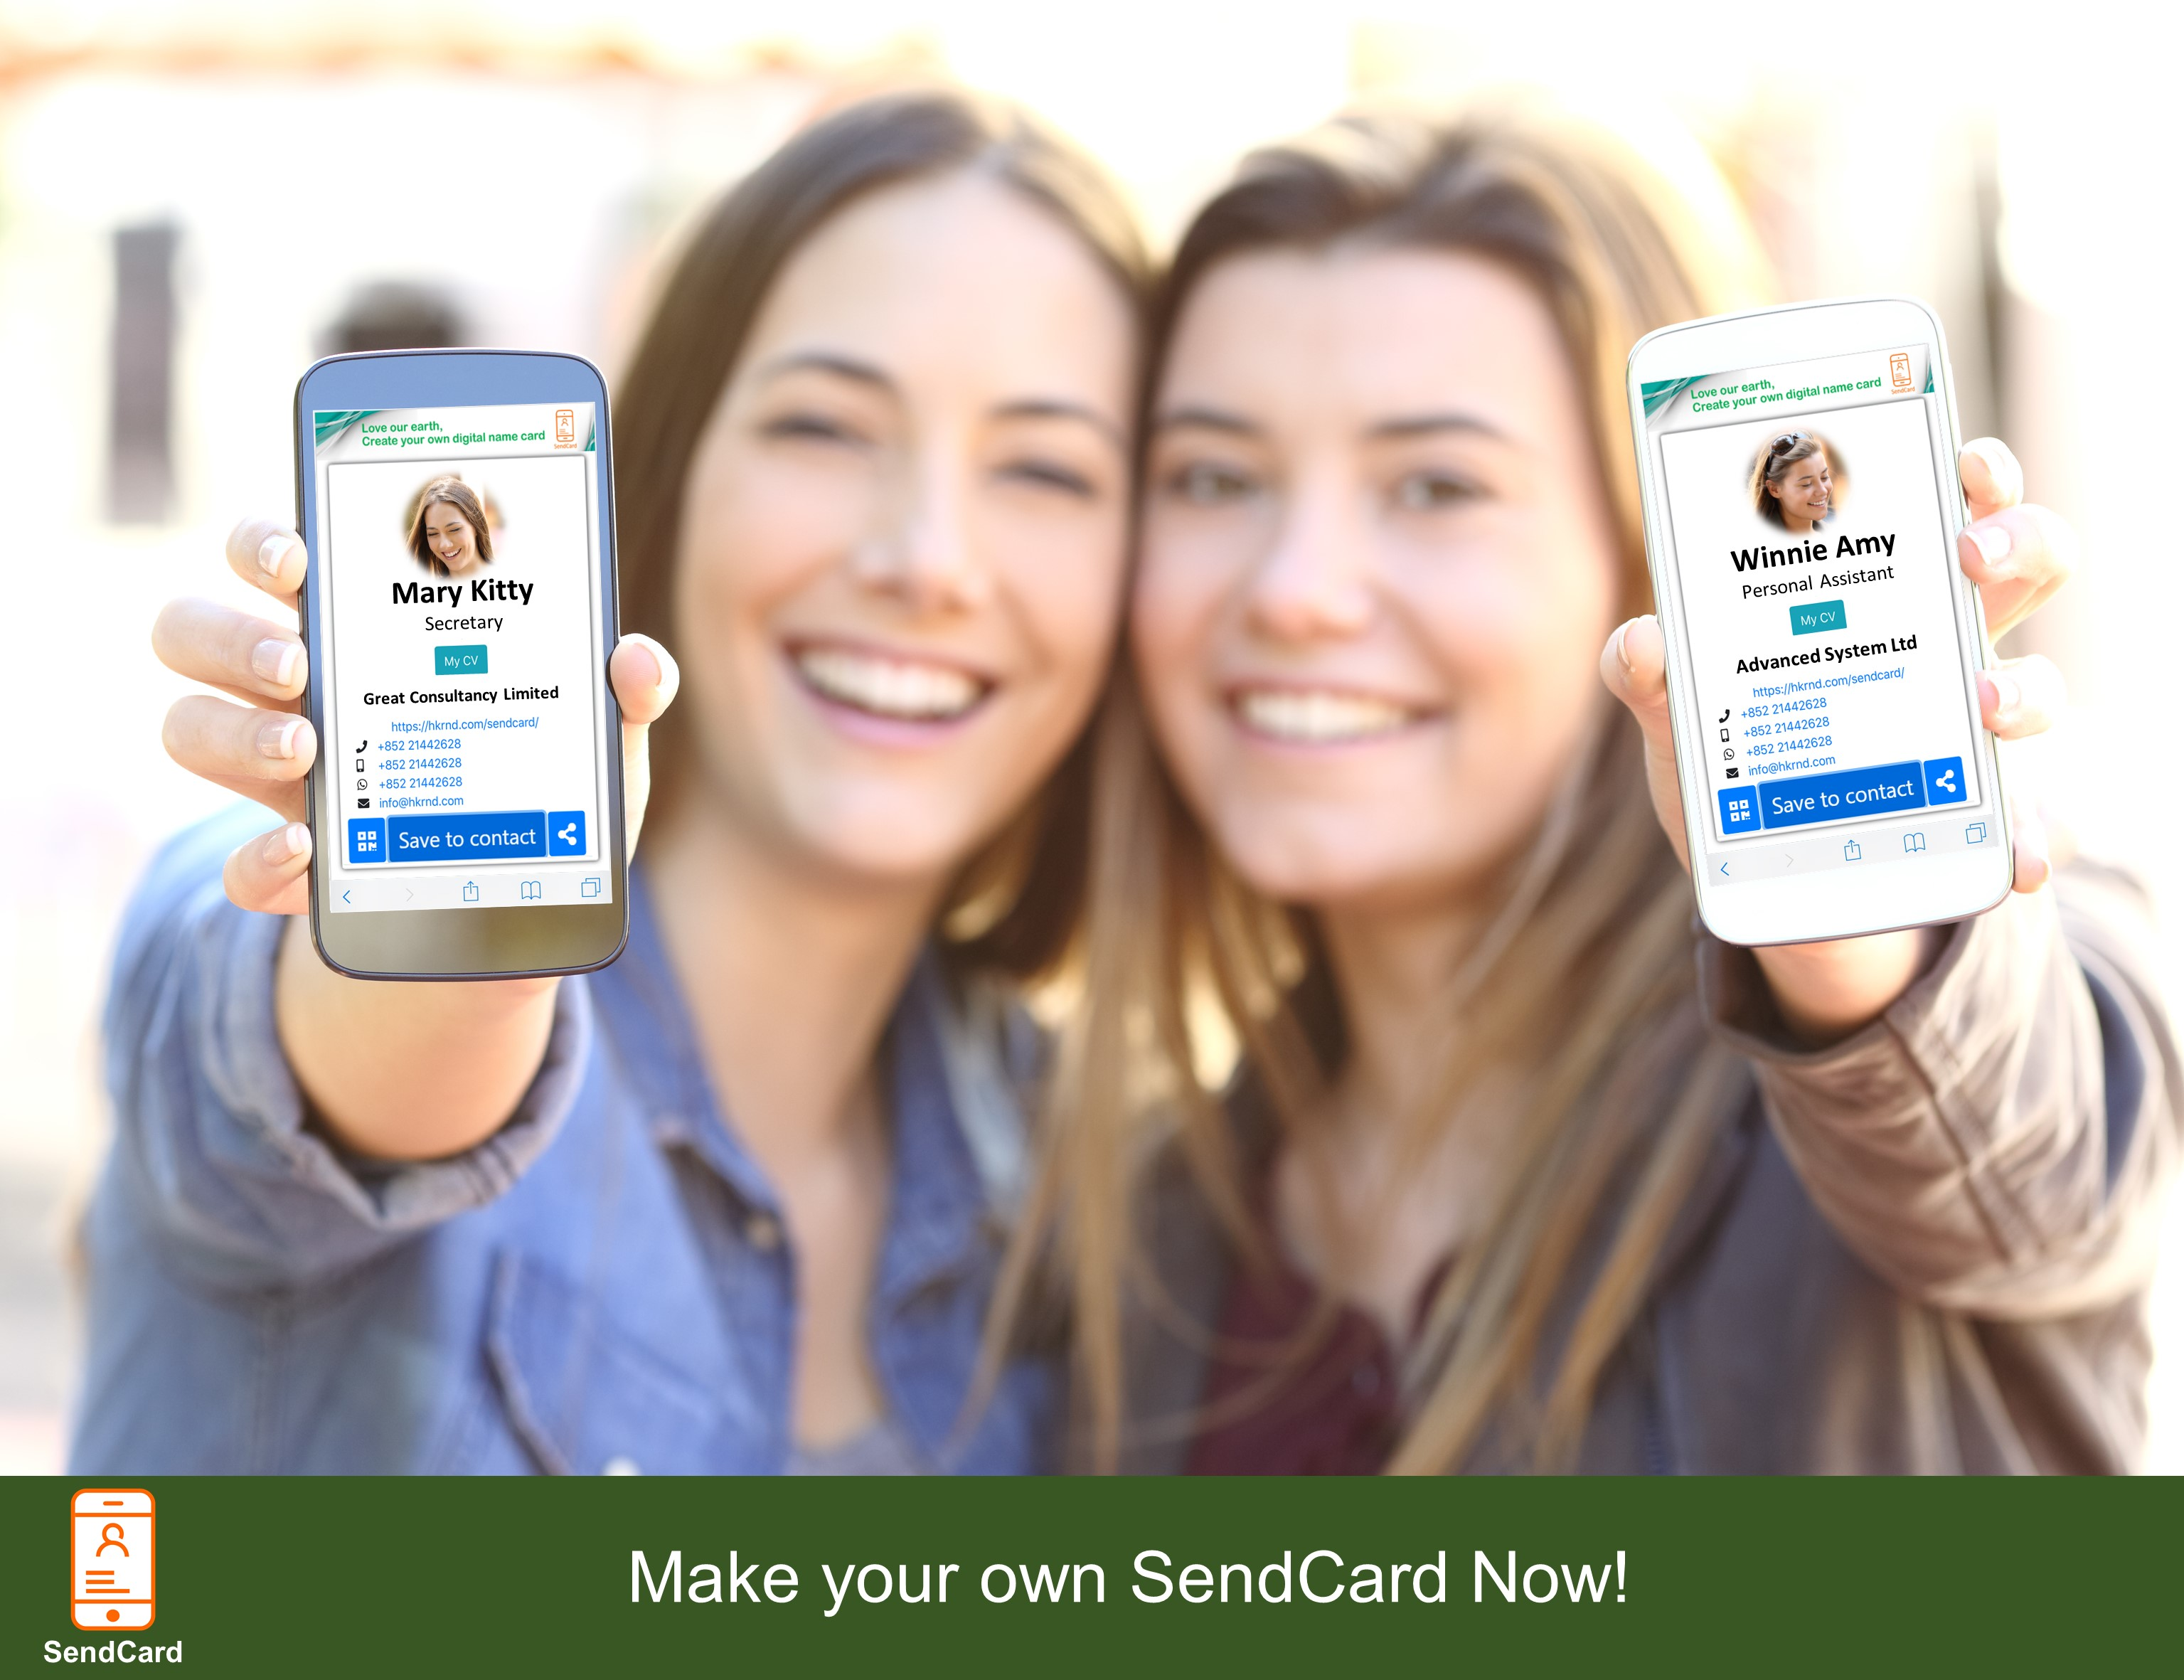 Two girls show using Sendcard